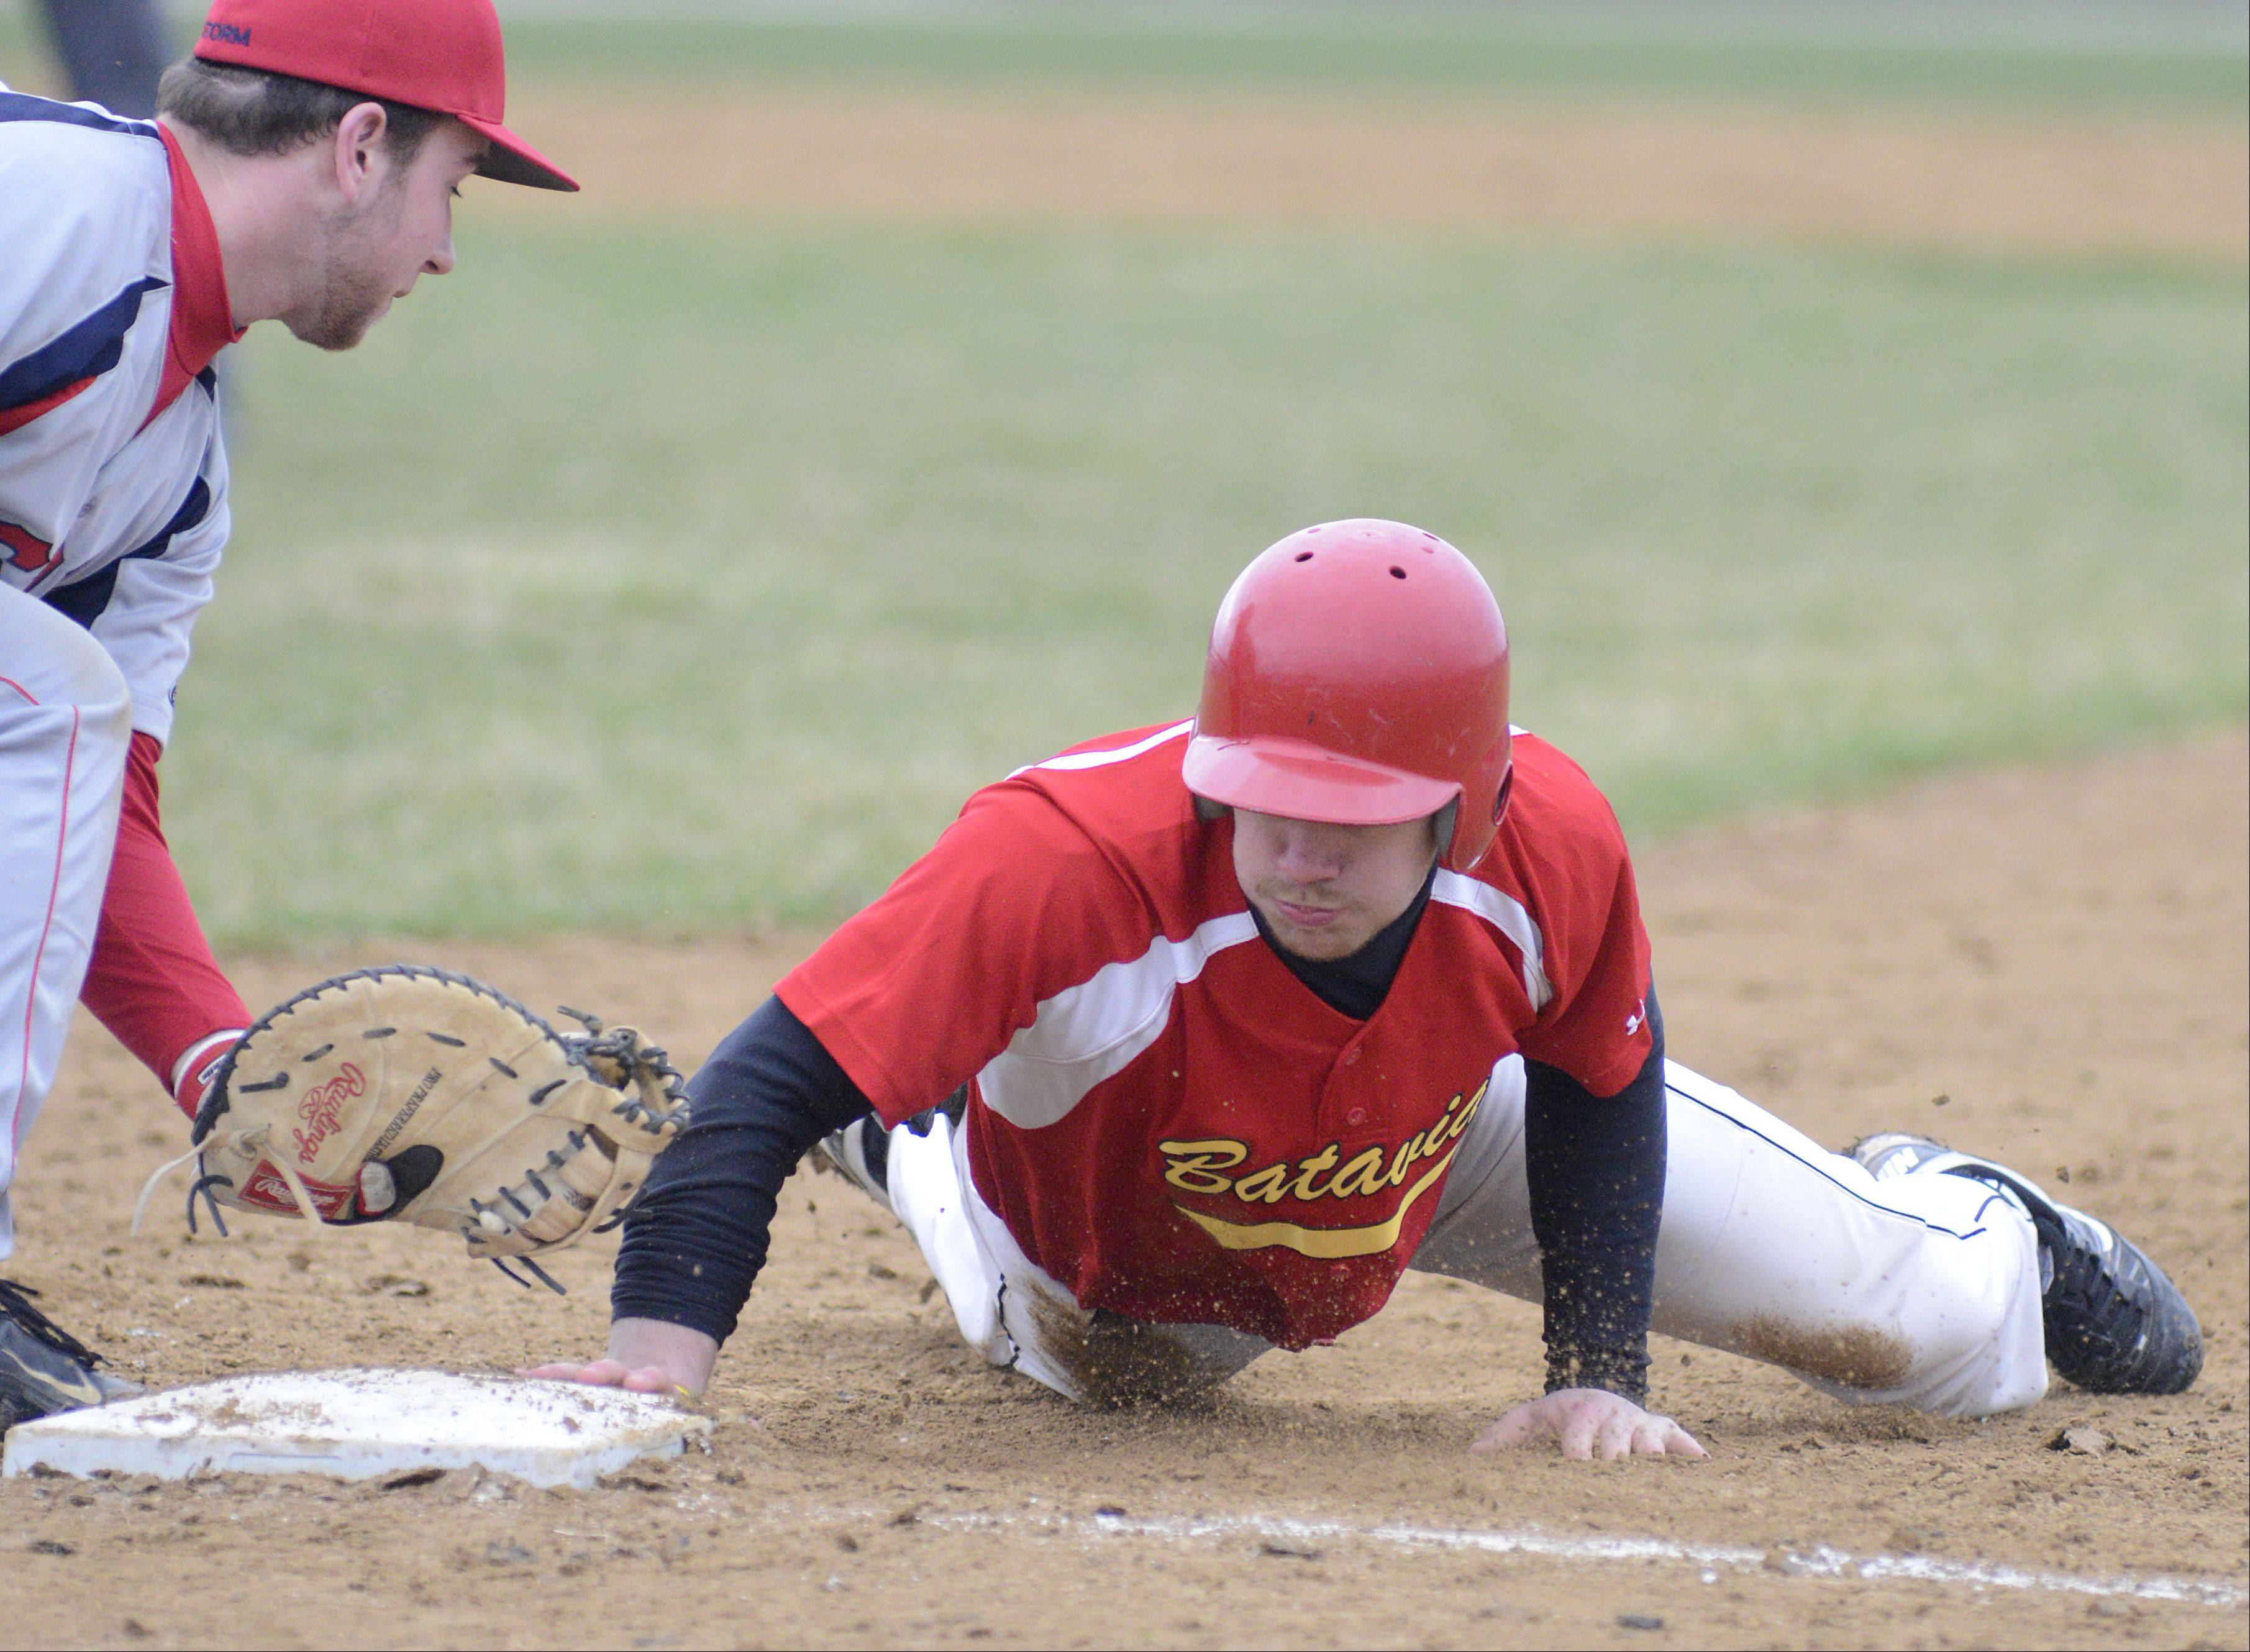 South Elgin's Alex Wolfe is just a second too late from tagging out Batavia's Robbie Bowman at first base Friday.